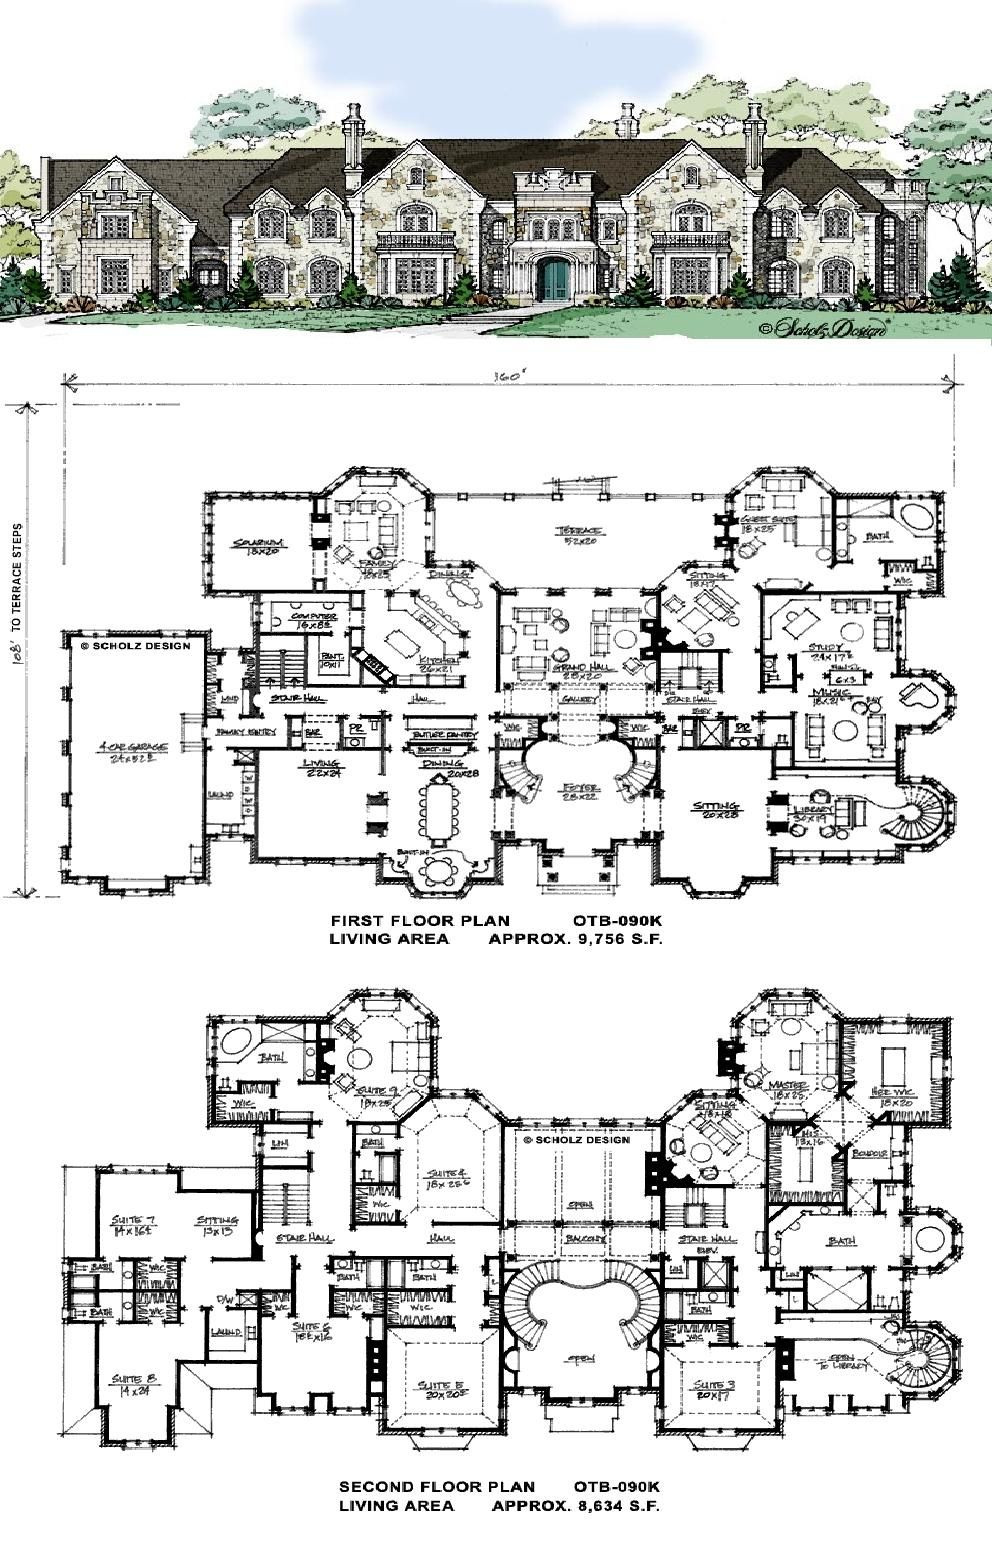 Luxury Estate House Plans Beautiful Love the Flowing Symmetry Defined Rooms Including Study